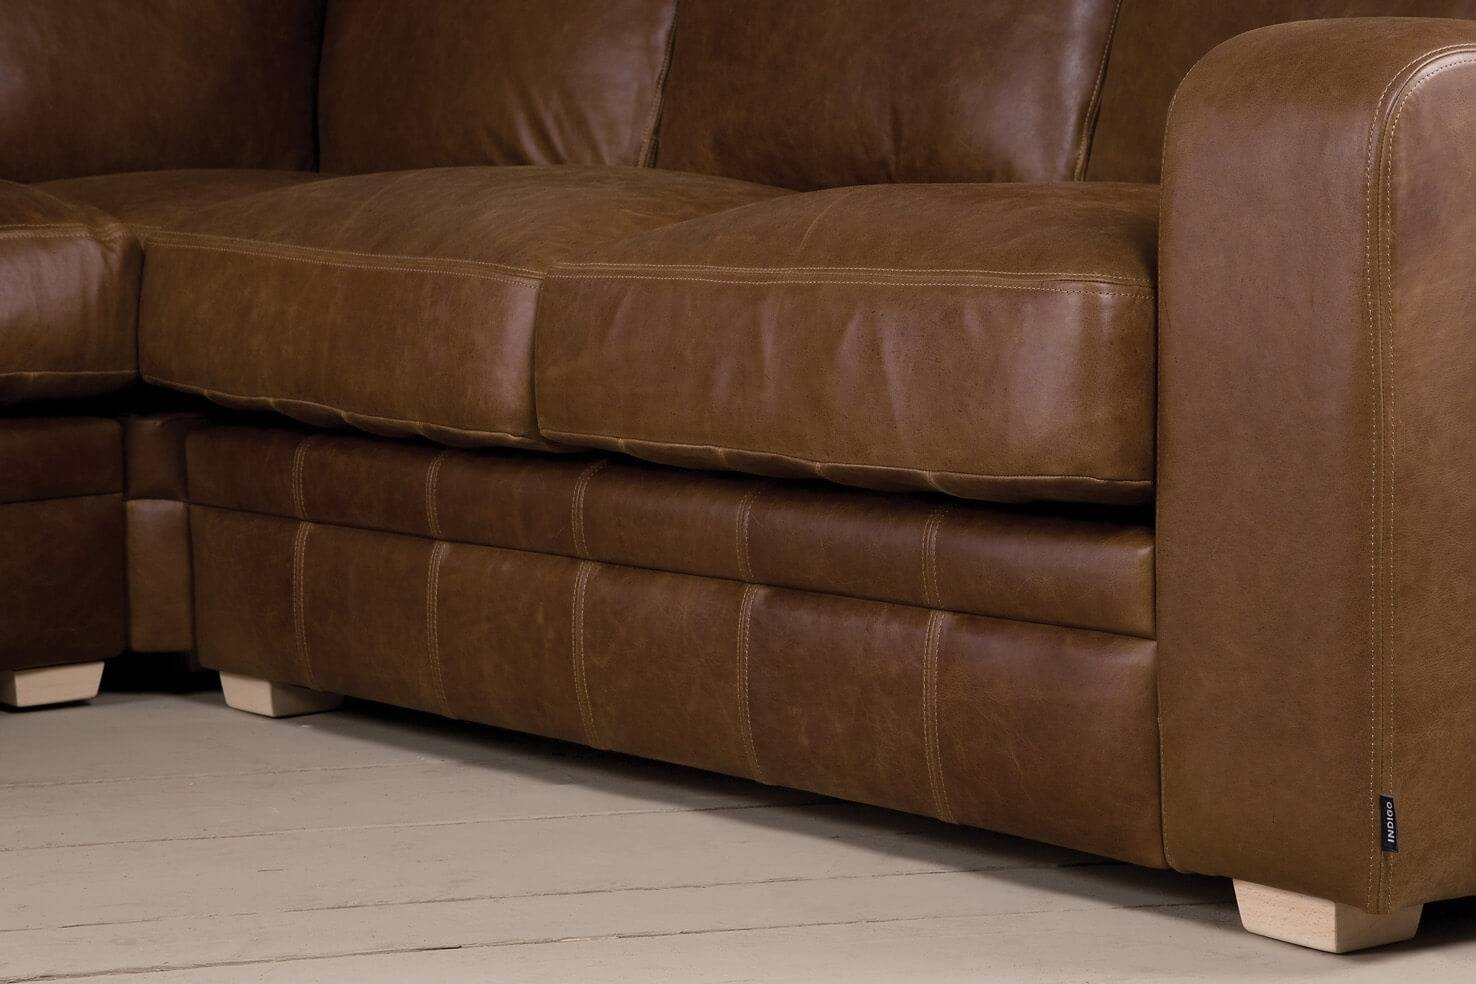 The Square Arm Leather Corner Sofaindigo Furniture regarding Corner Sofa Leather (Image 27 of 30)